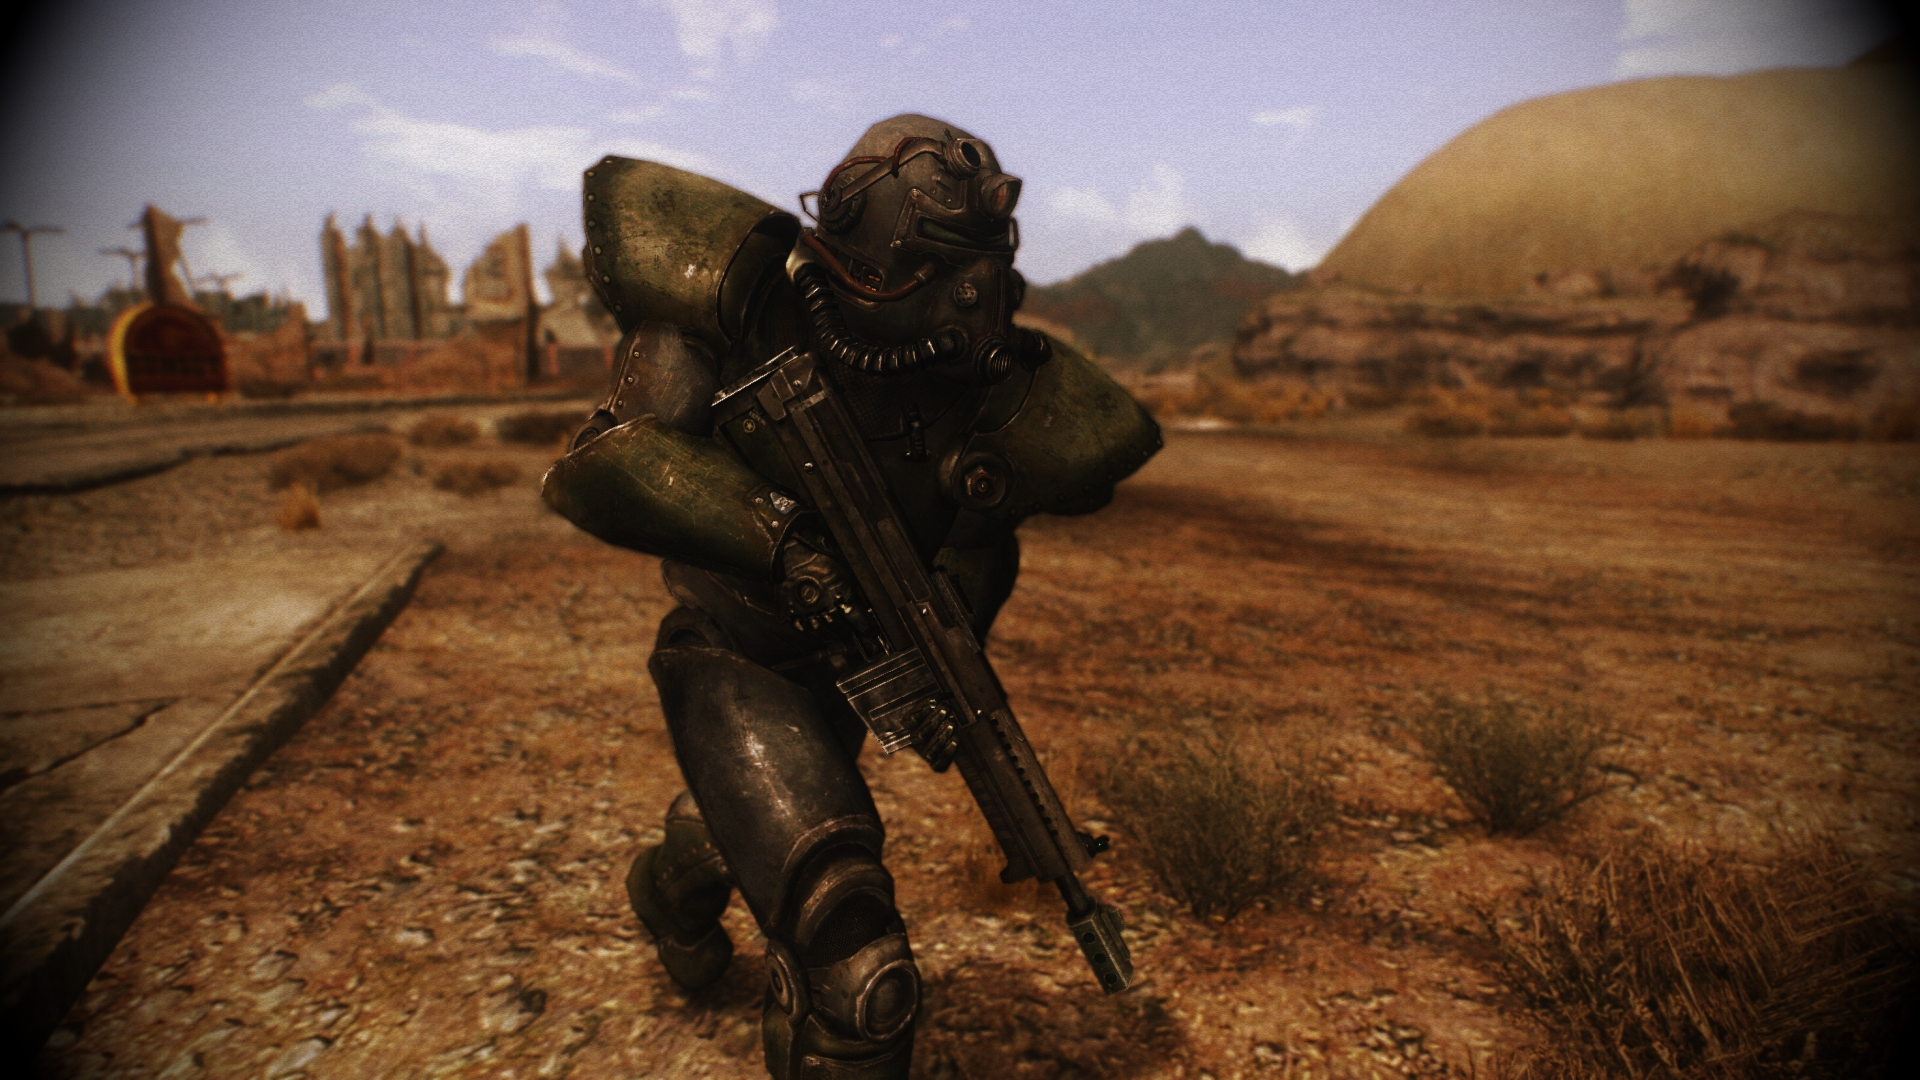 Fallout: New Vegas Wallpapers, Pictures, Images